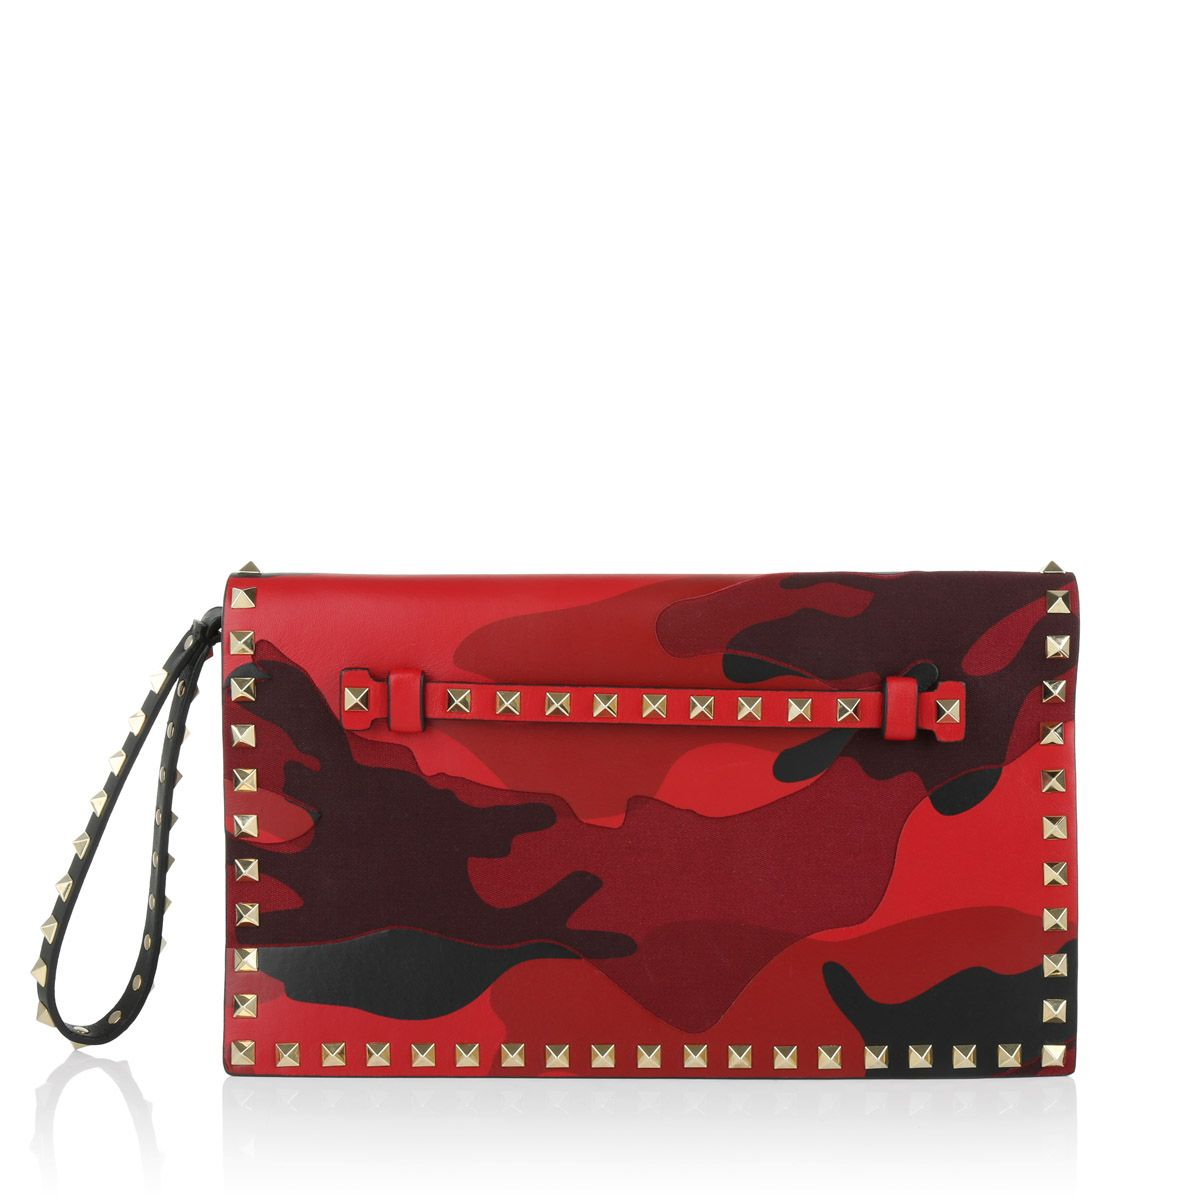 Rocks! Valentino Garavani Rockstud Clutch in red camo!!! Fashionette.de